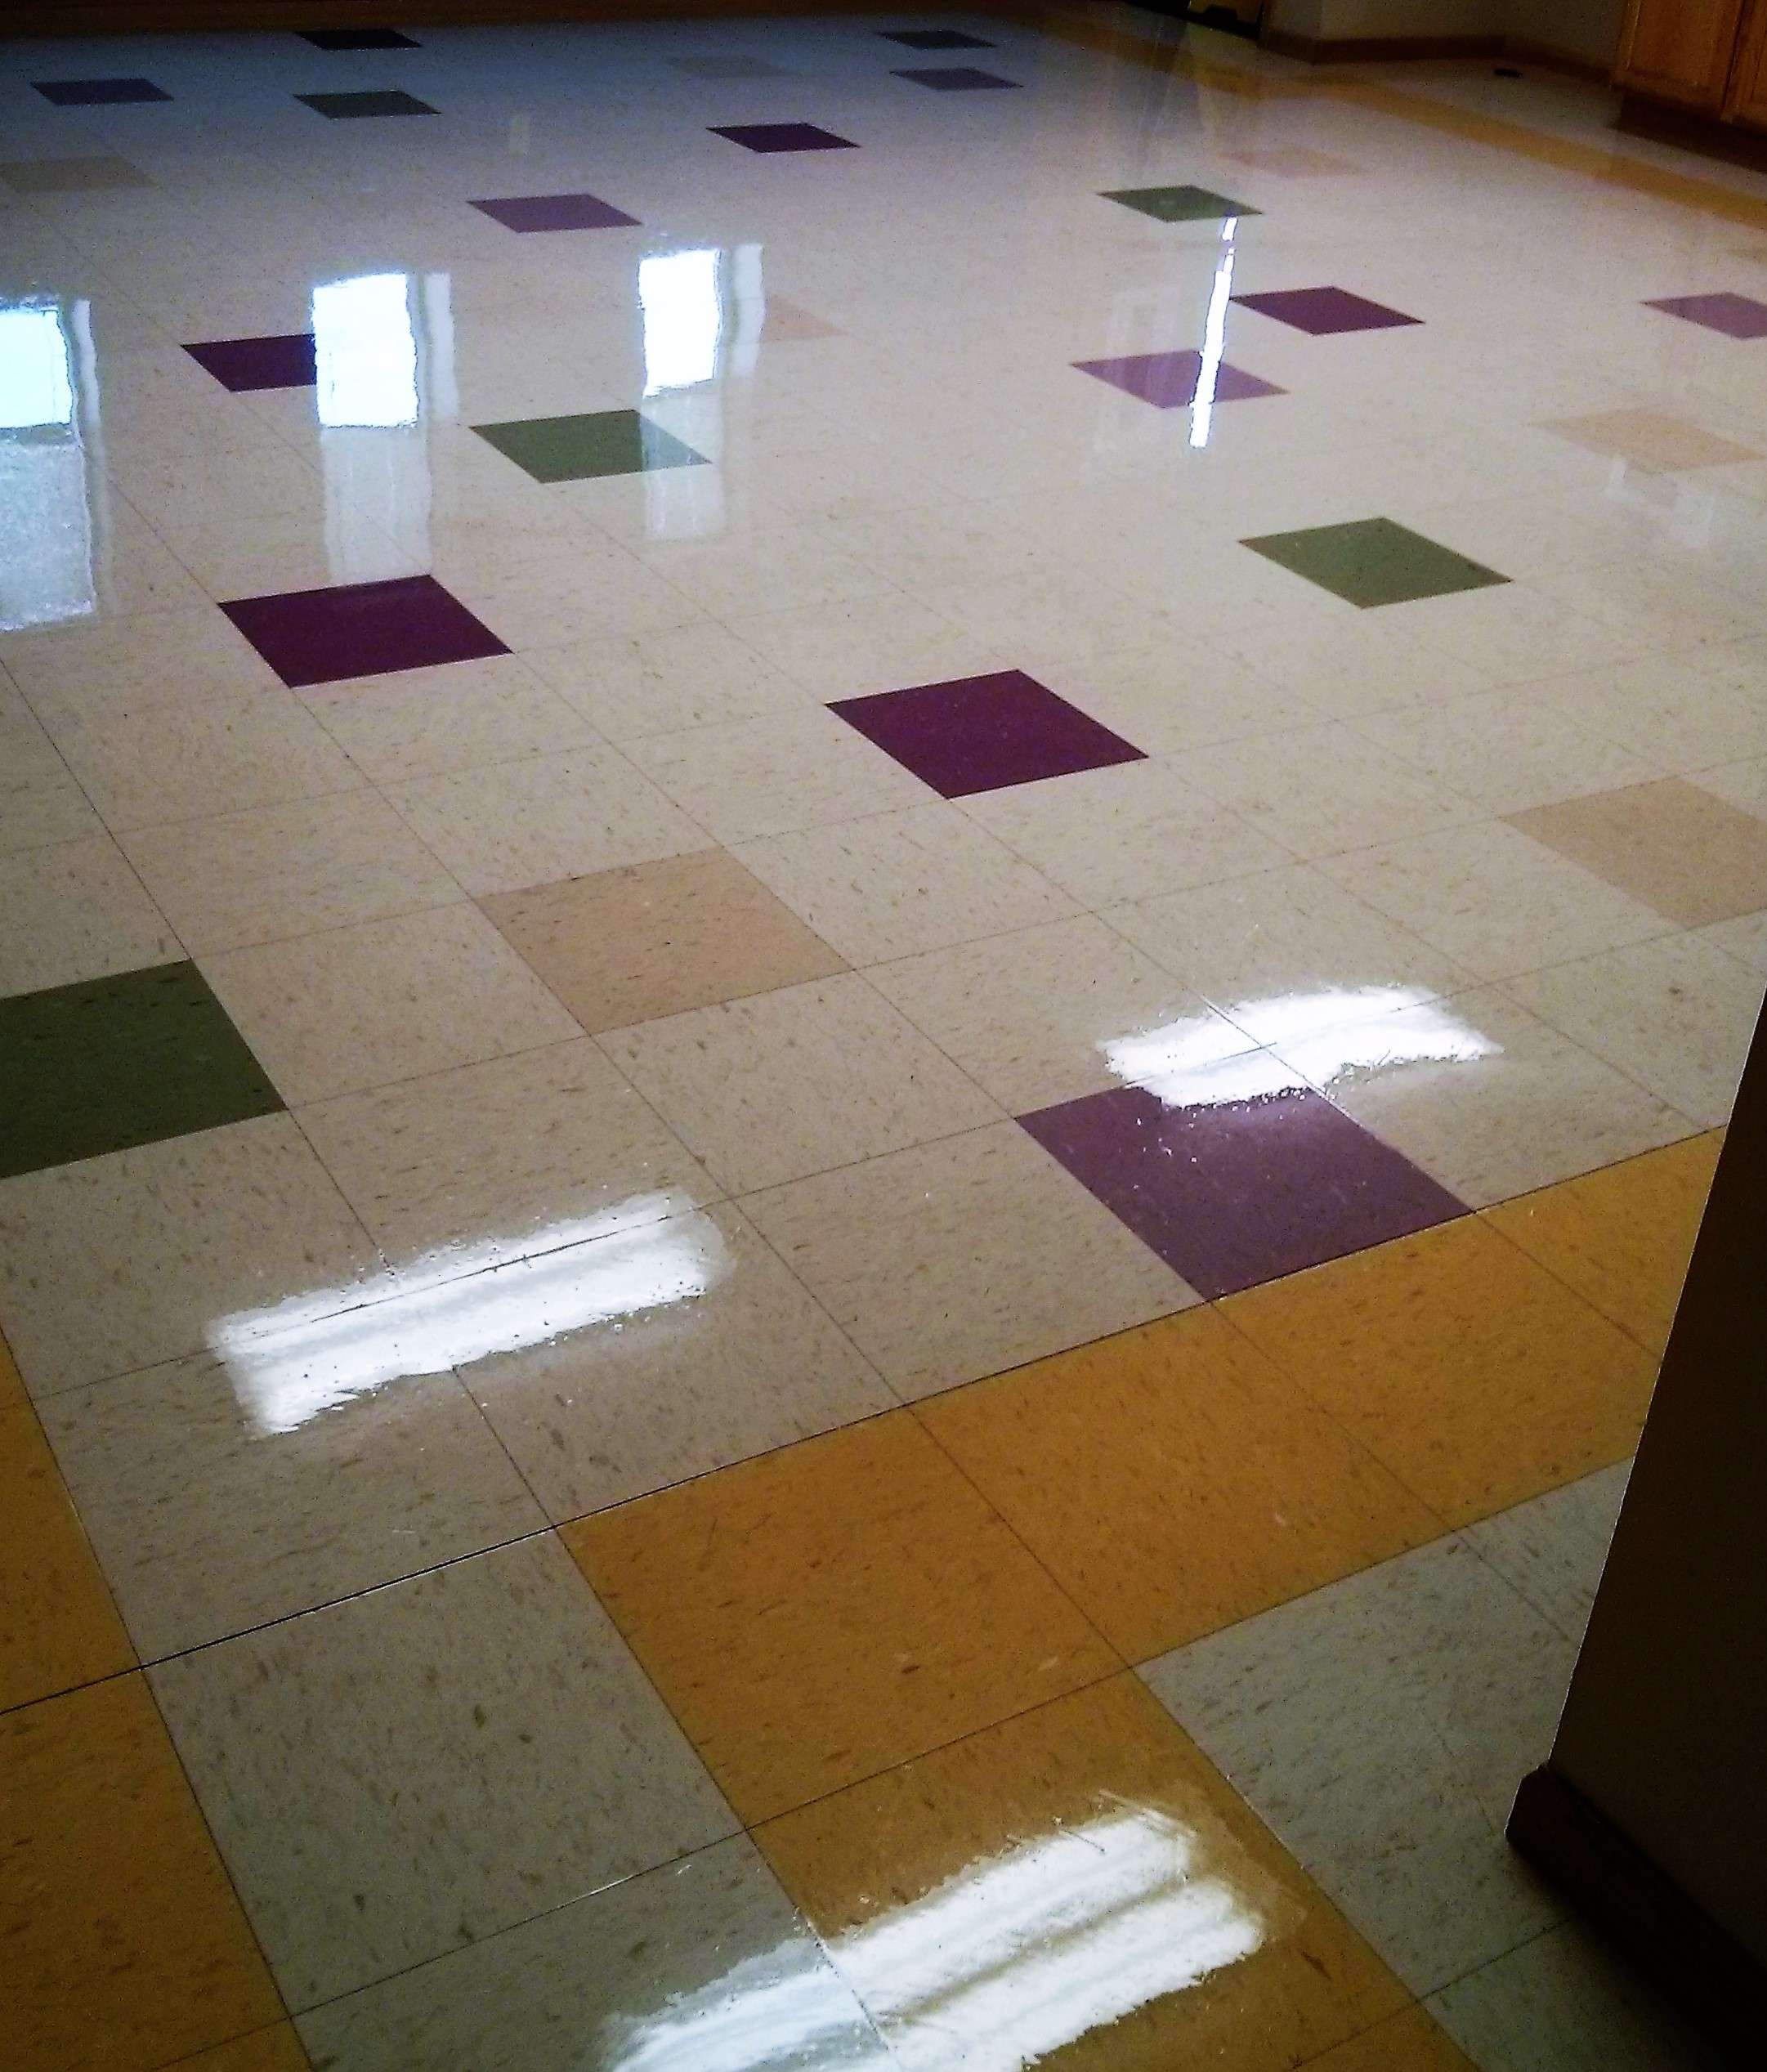 Vct vinyl tile floor really pops after deep scrub and recoat vct tile floor deep scrubbed and recoated in maplewood mn dailygadgetfo Image collections